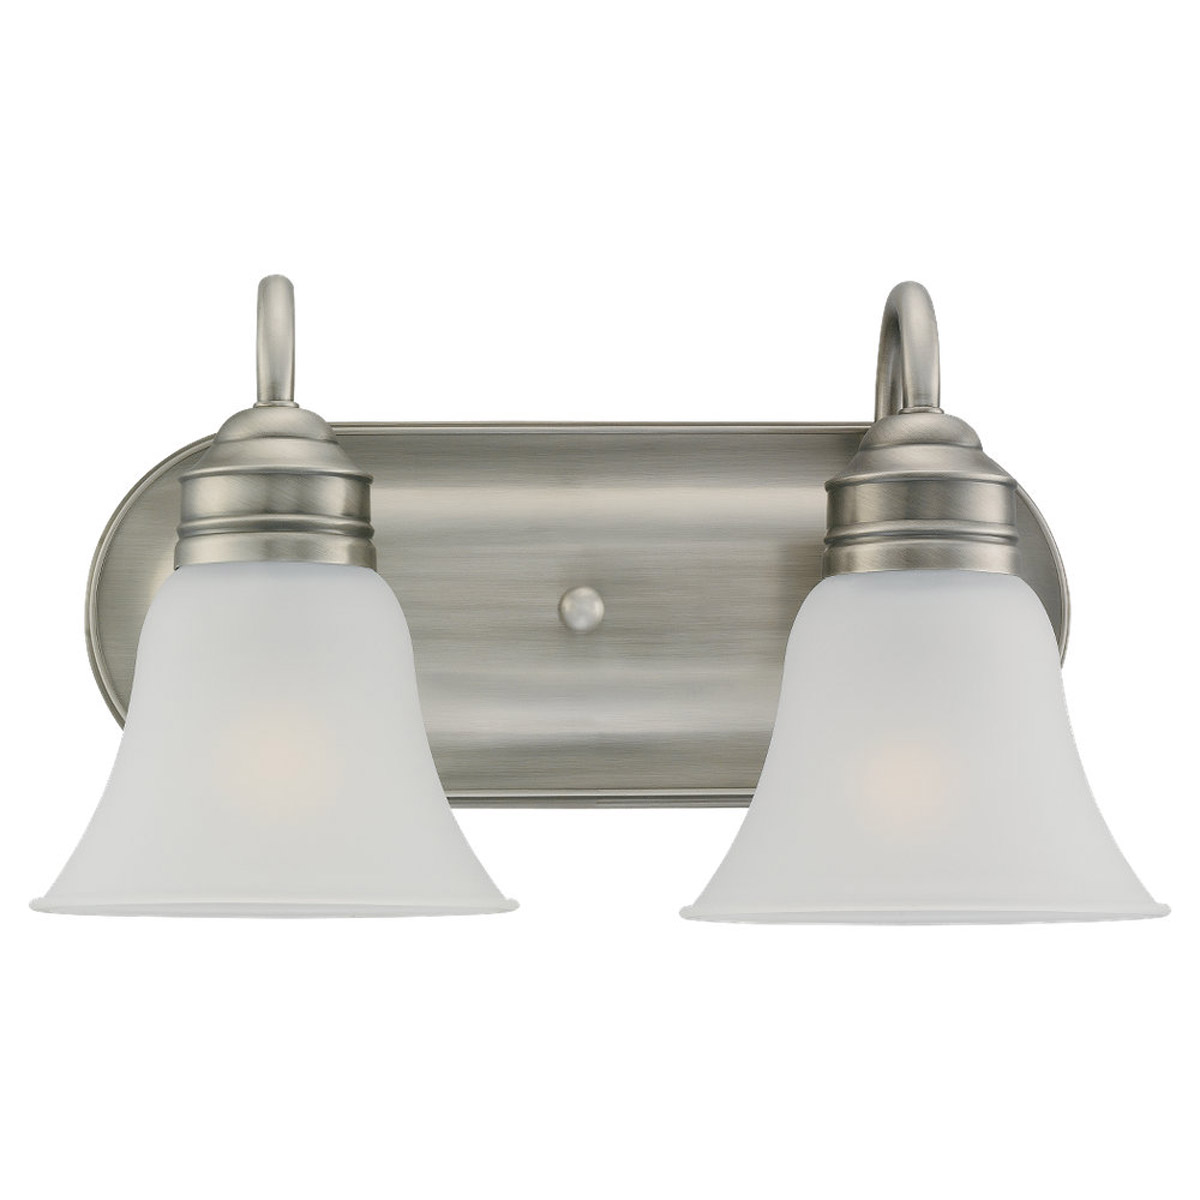 Sea Gull 49851BLE-965 Gladstone 2 Light 15 inch Antique Brushed Nickel Bath Vanity Wall Light in Satin Etched Glass photo